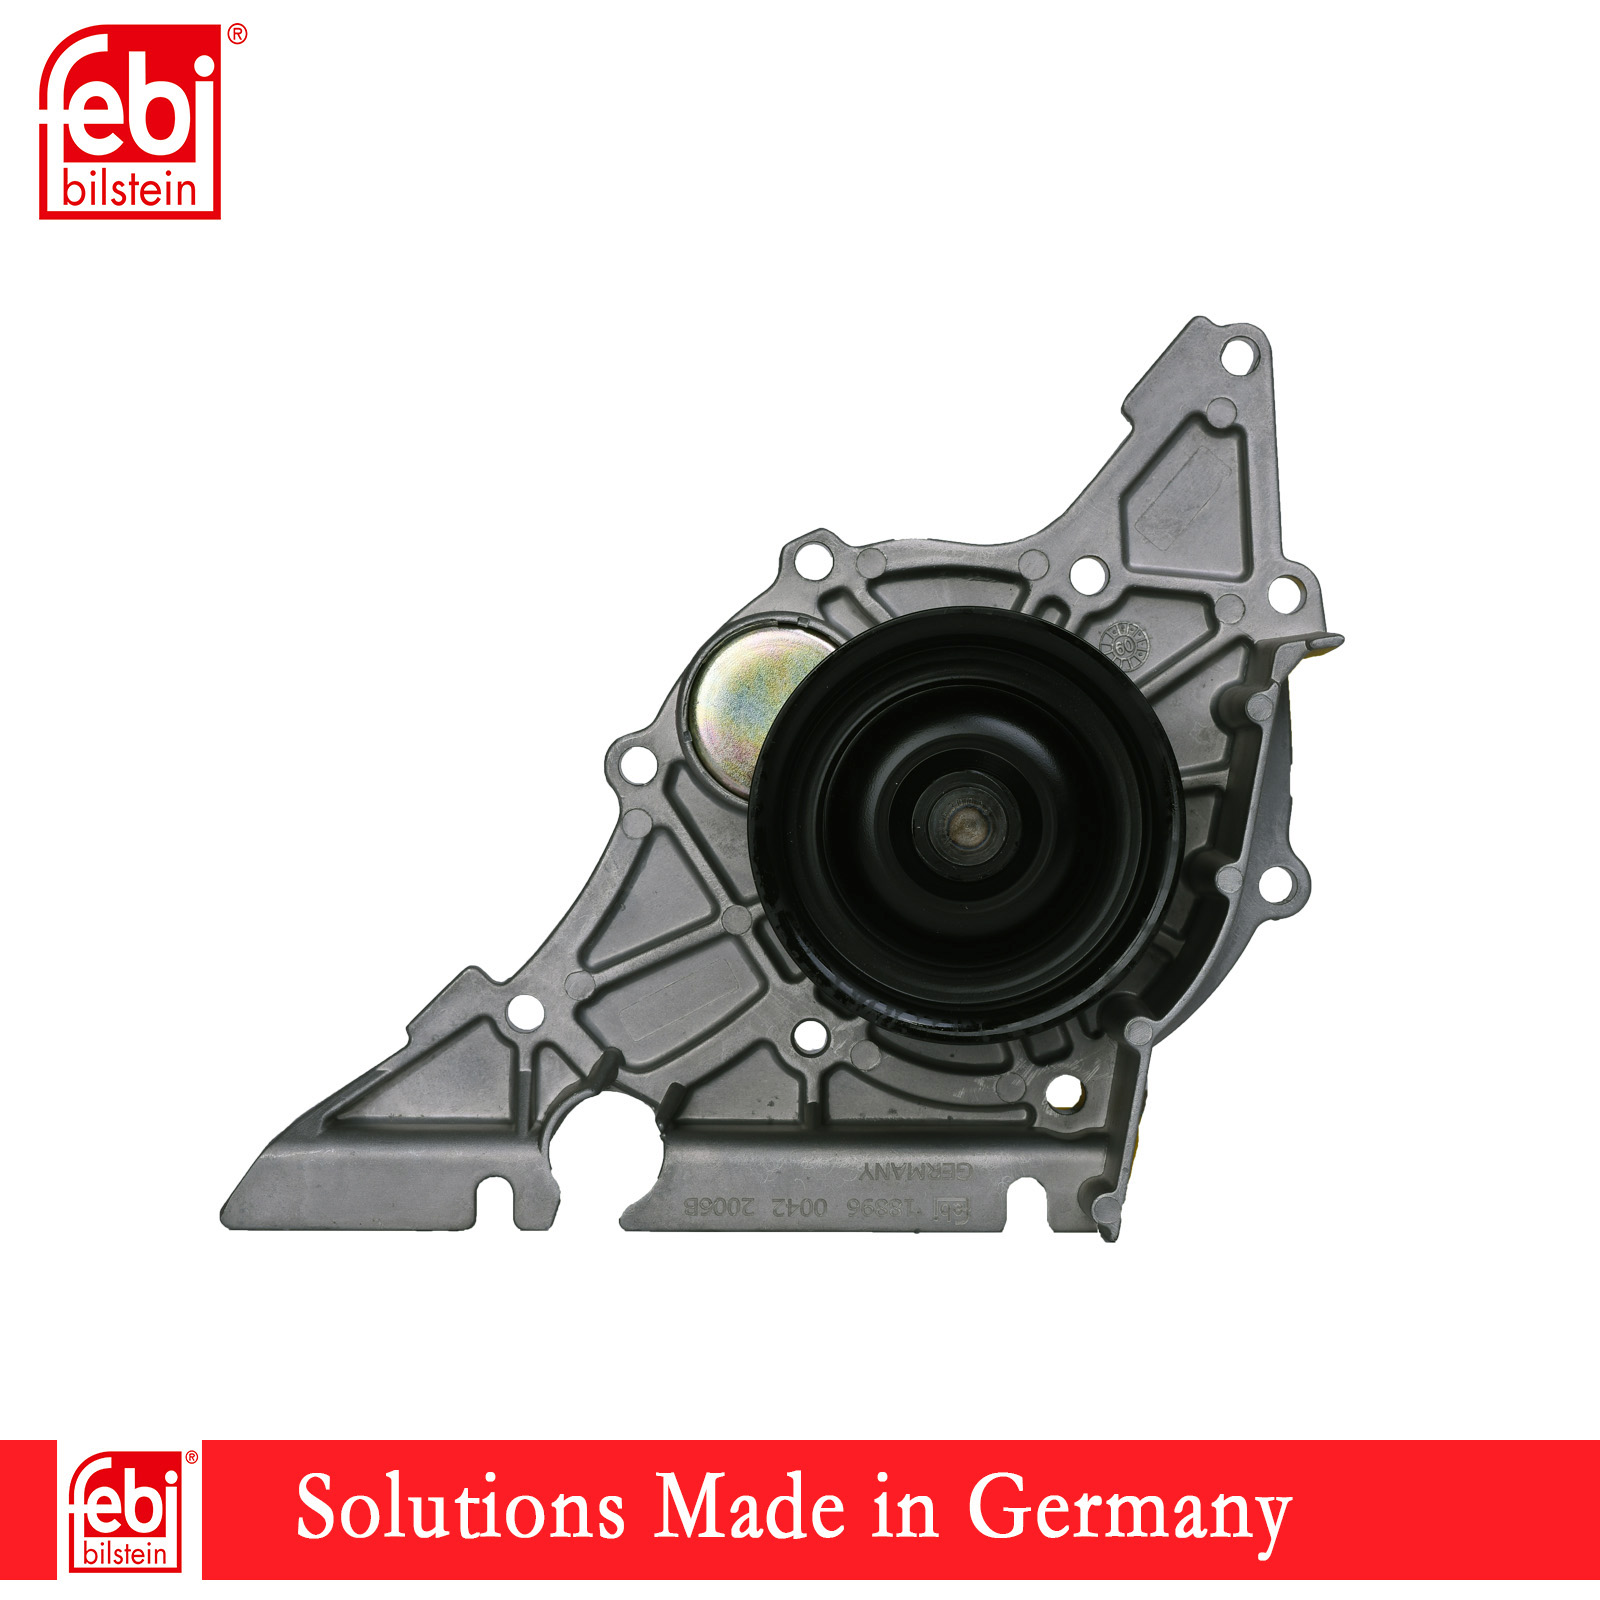 Germany febi audi c5a6 passat b5 field 2.4 2.8 imported water pump dedicated 6 cylinder pump